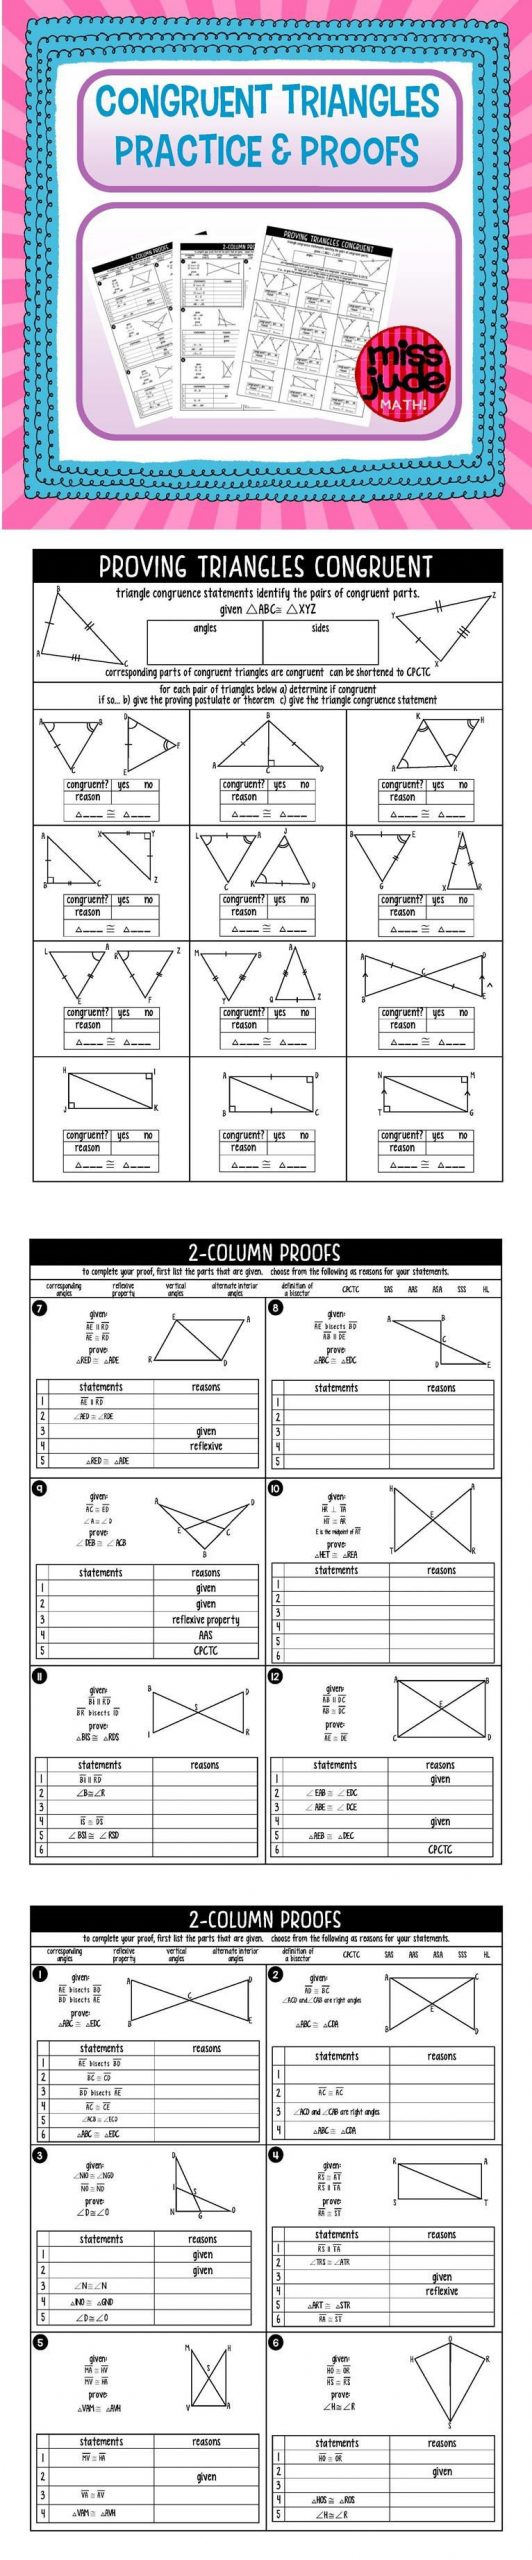 Introduction to Proofs Worksheet Answers